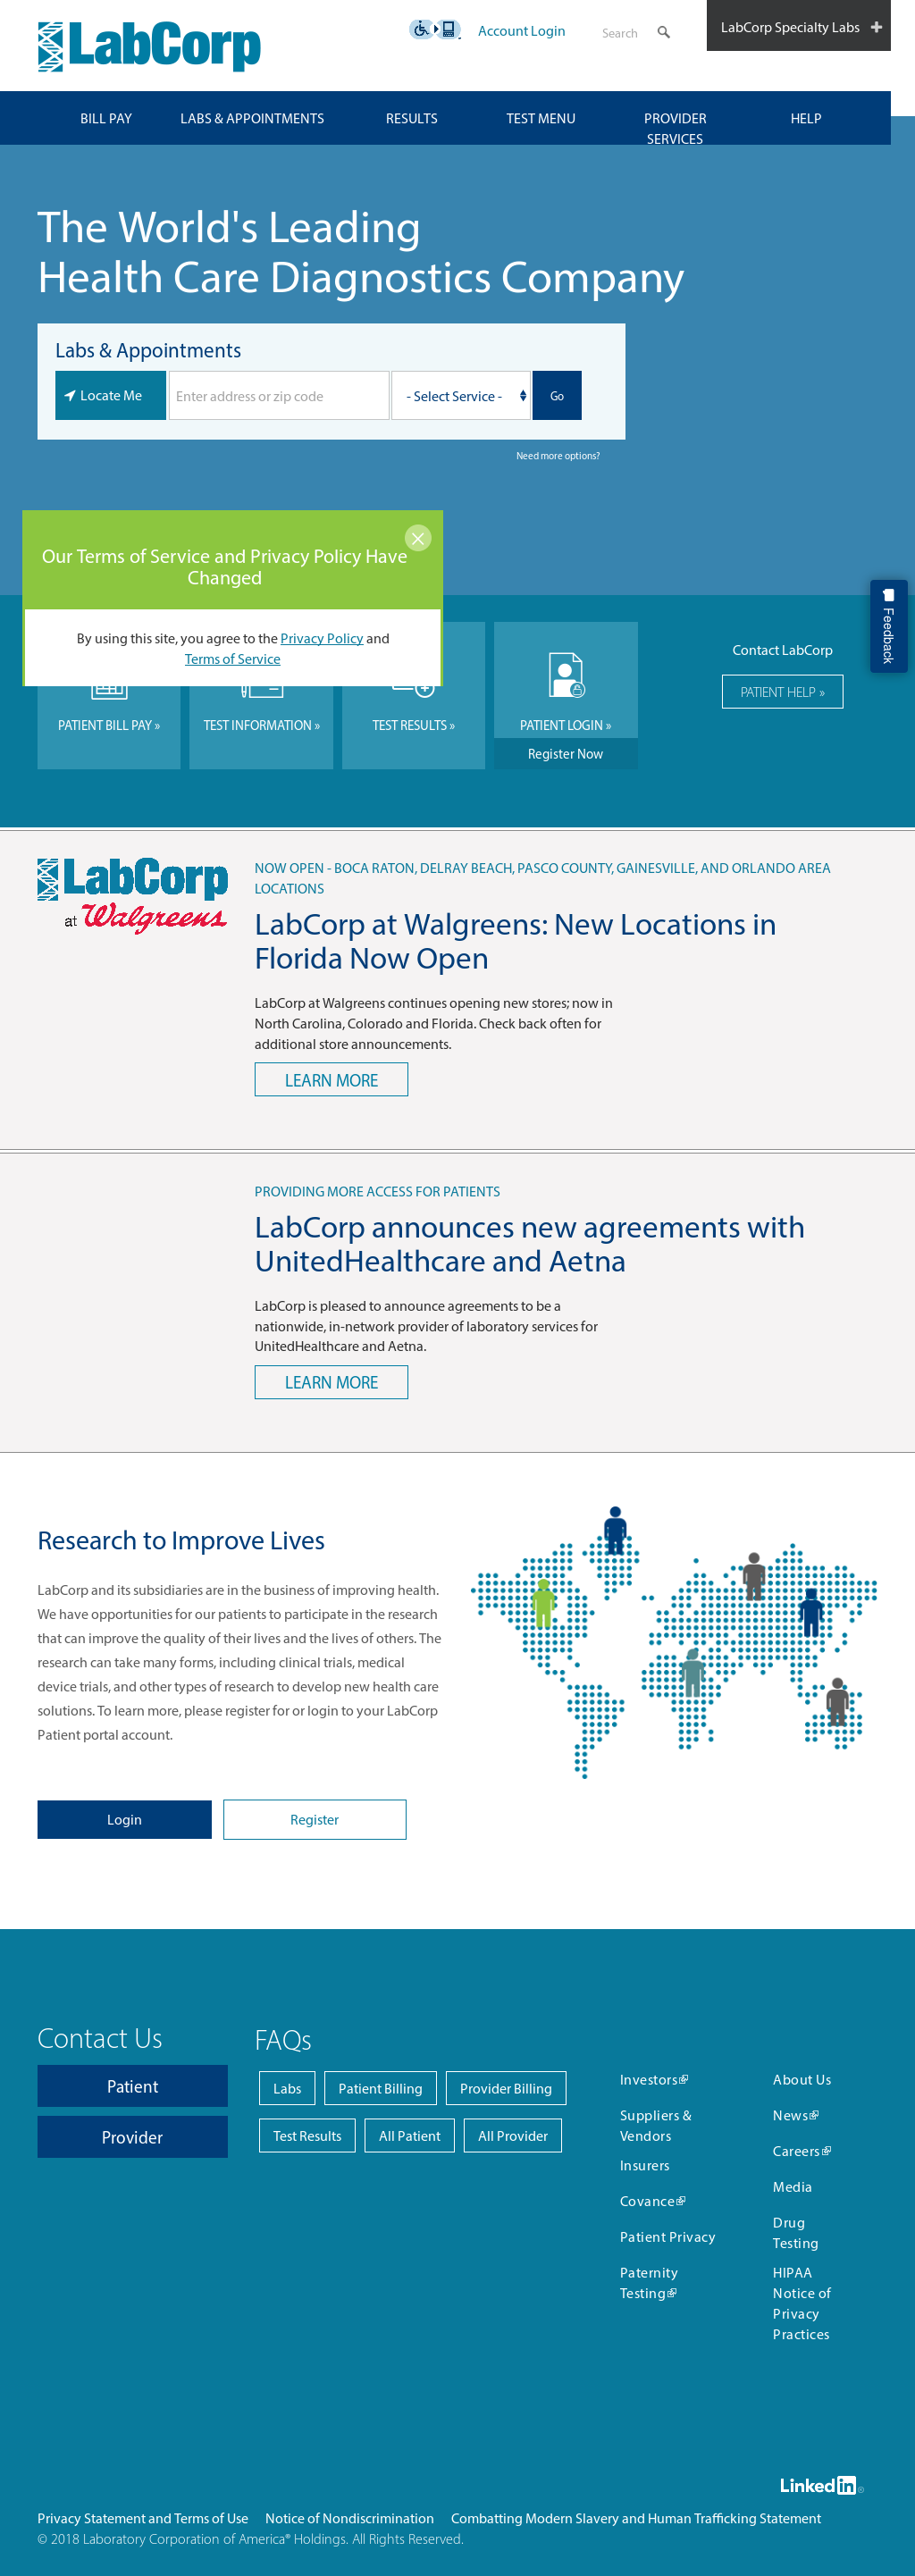 LabCorp Competitors, Revenue and Employees - Owler Company